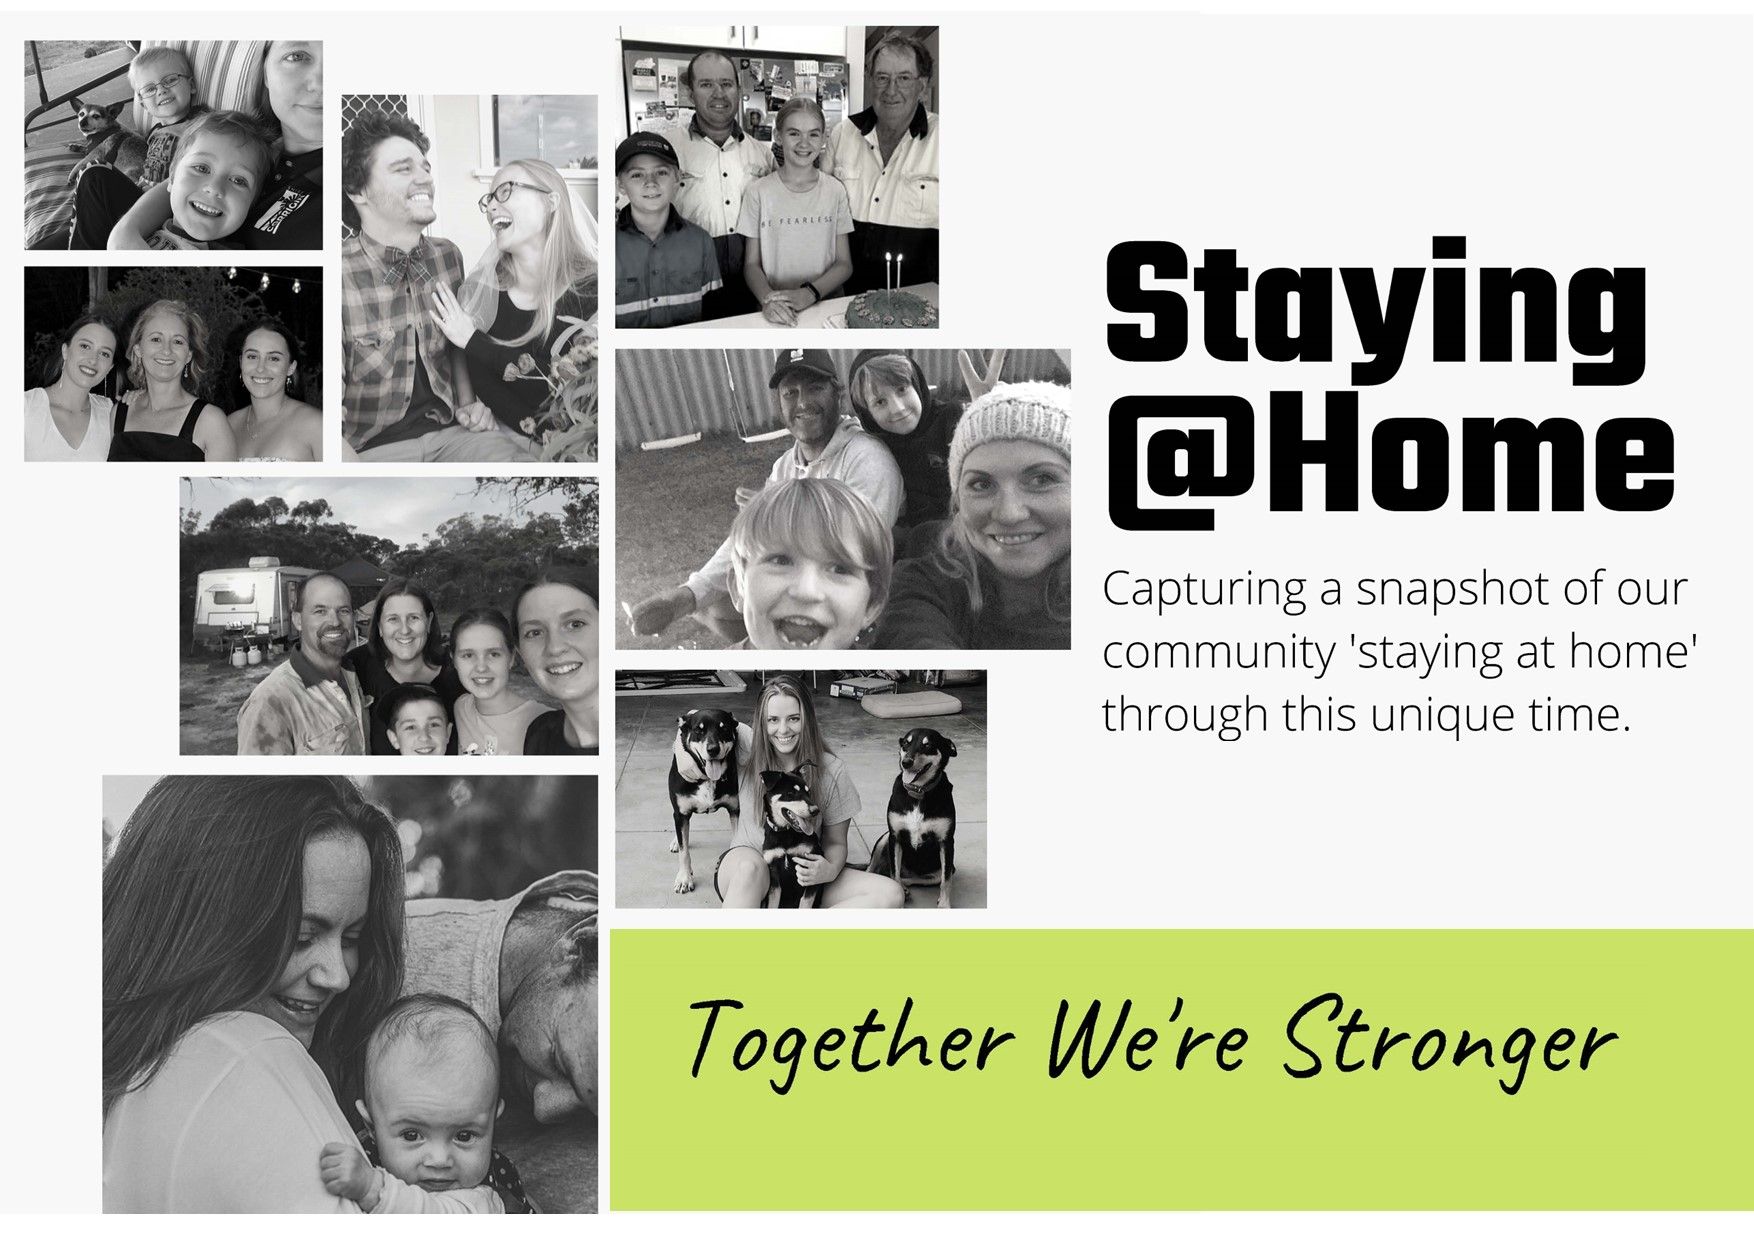 CORRIGIN COMMUNITY PHOTO PROJECT 'Staying@Home'